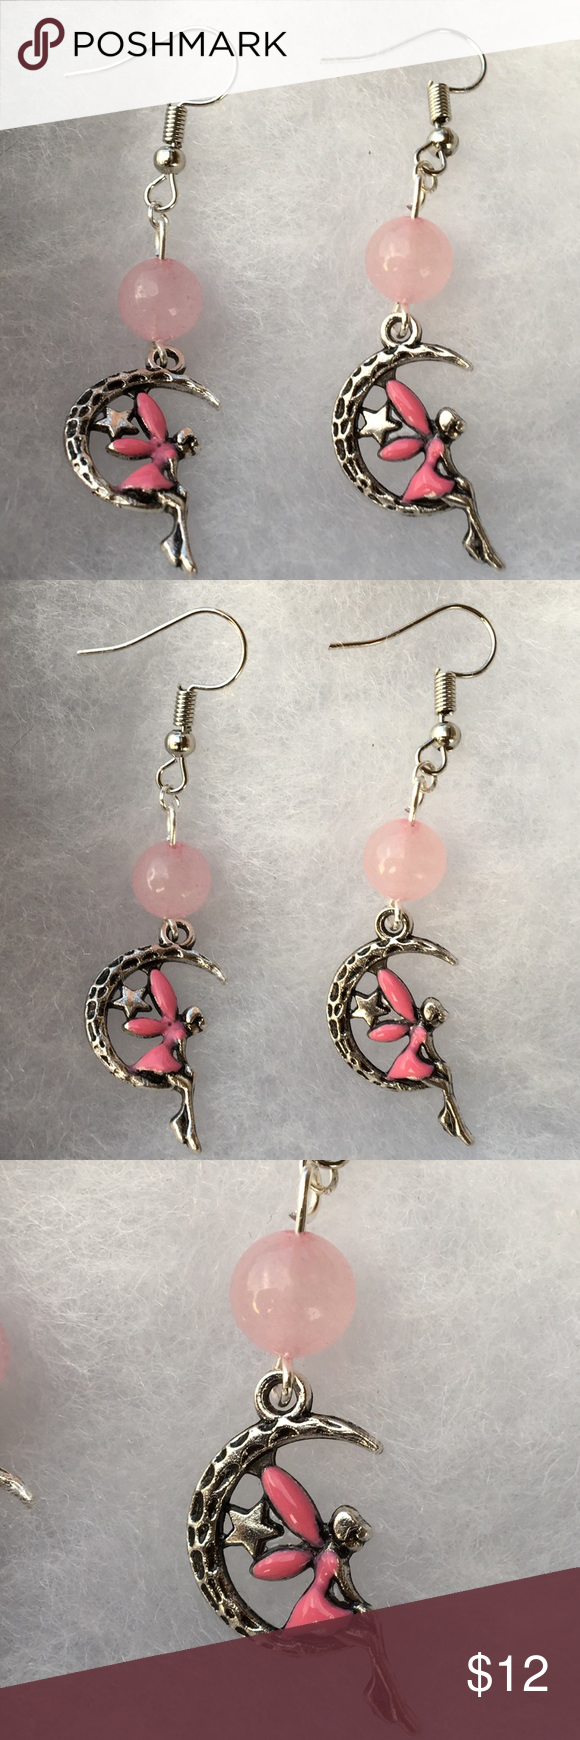 ee14155c1 Rose Quartz Pink Fairy Earrings These beautiful earrings are made with  natural rose quartz and hand painted pink fairy charms. The hooks are  sterling silver ...